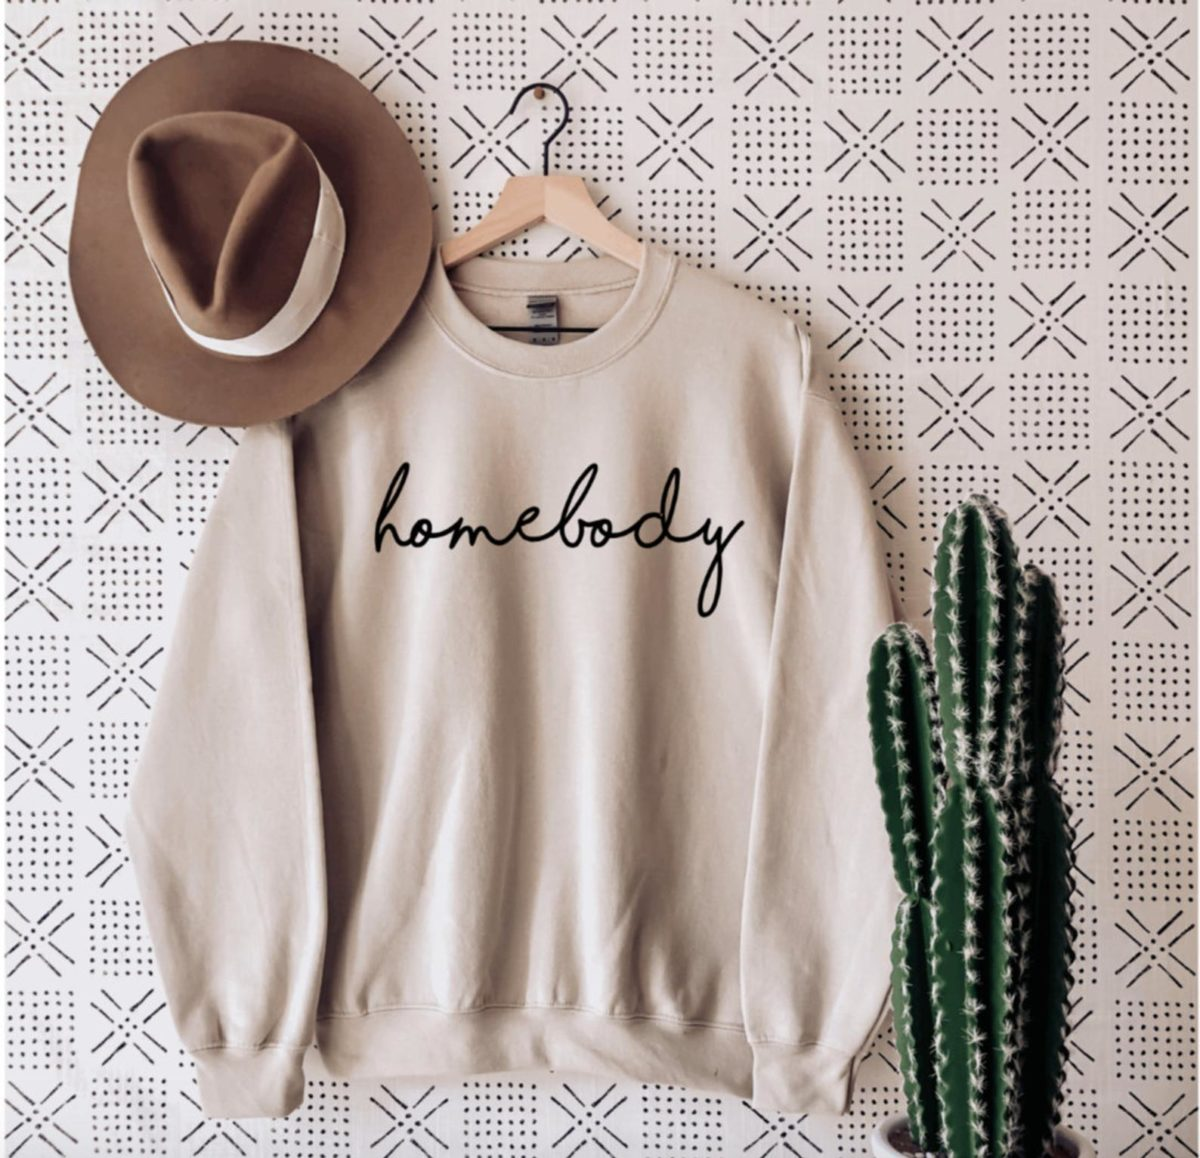 7 fun and affirmative sweatshirts sold on etsy